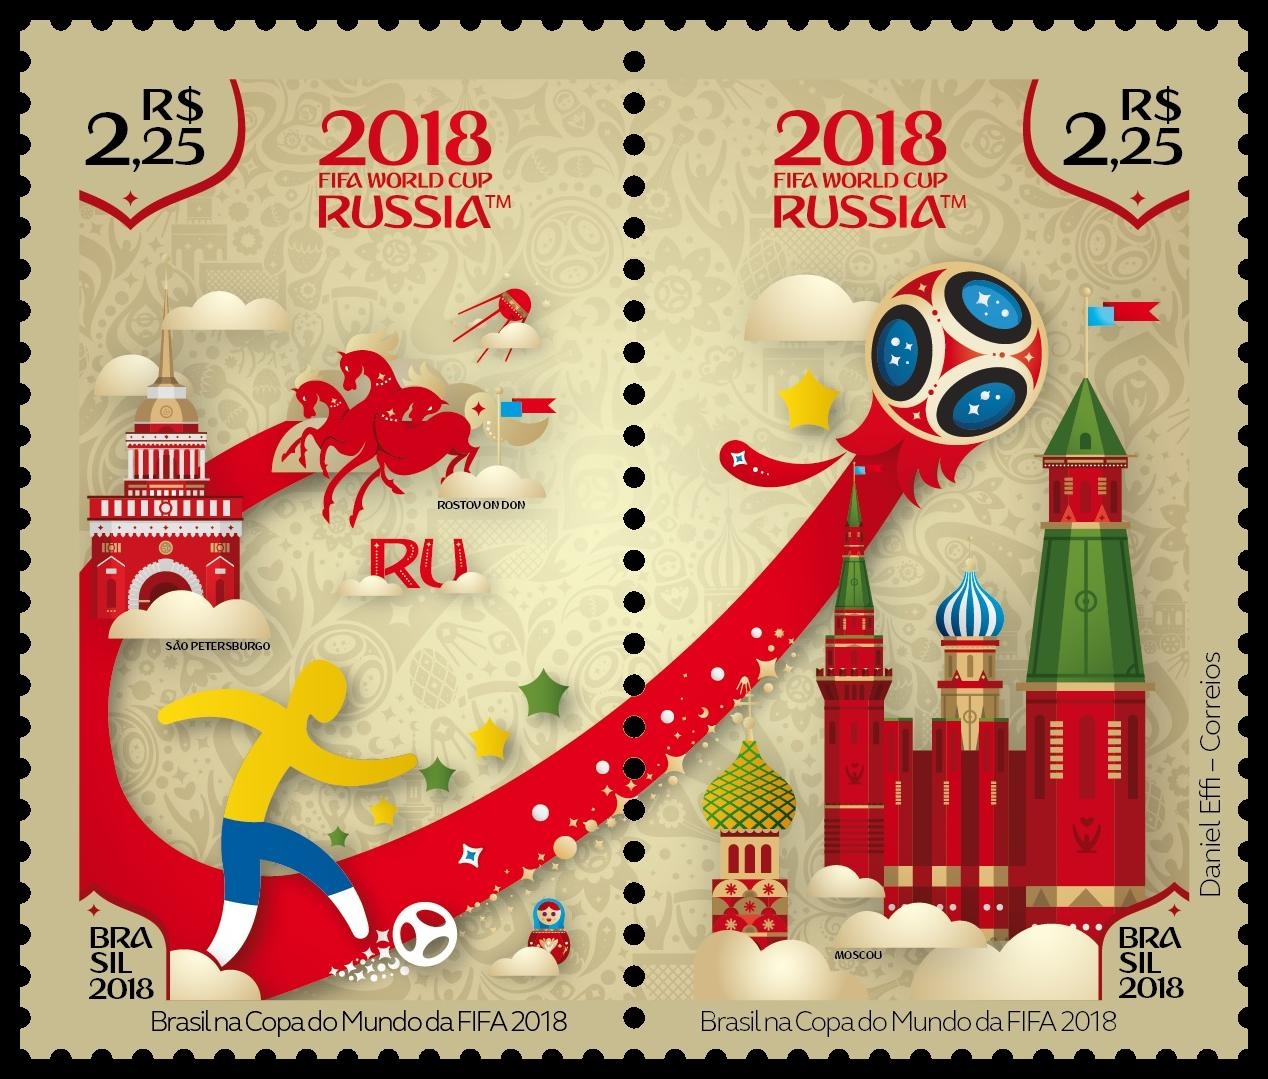 Postage stamps for the World Cup 2018 86